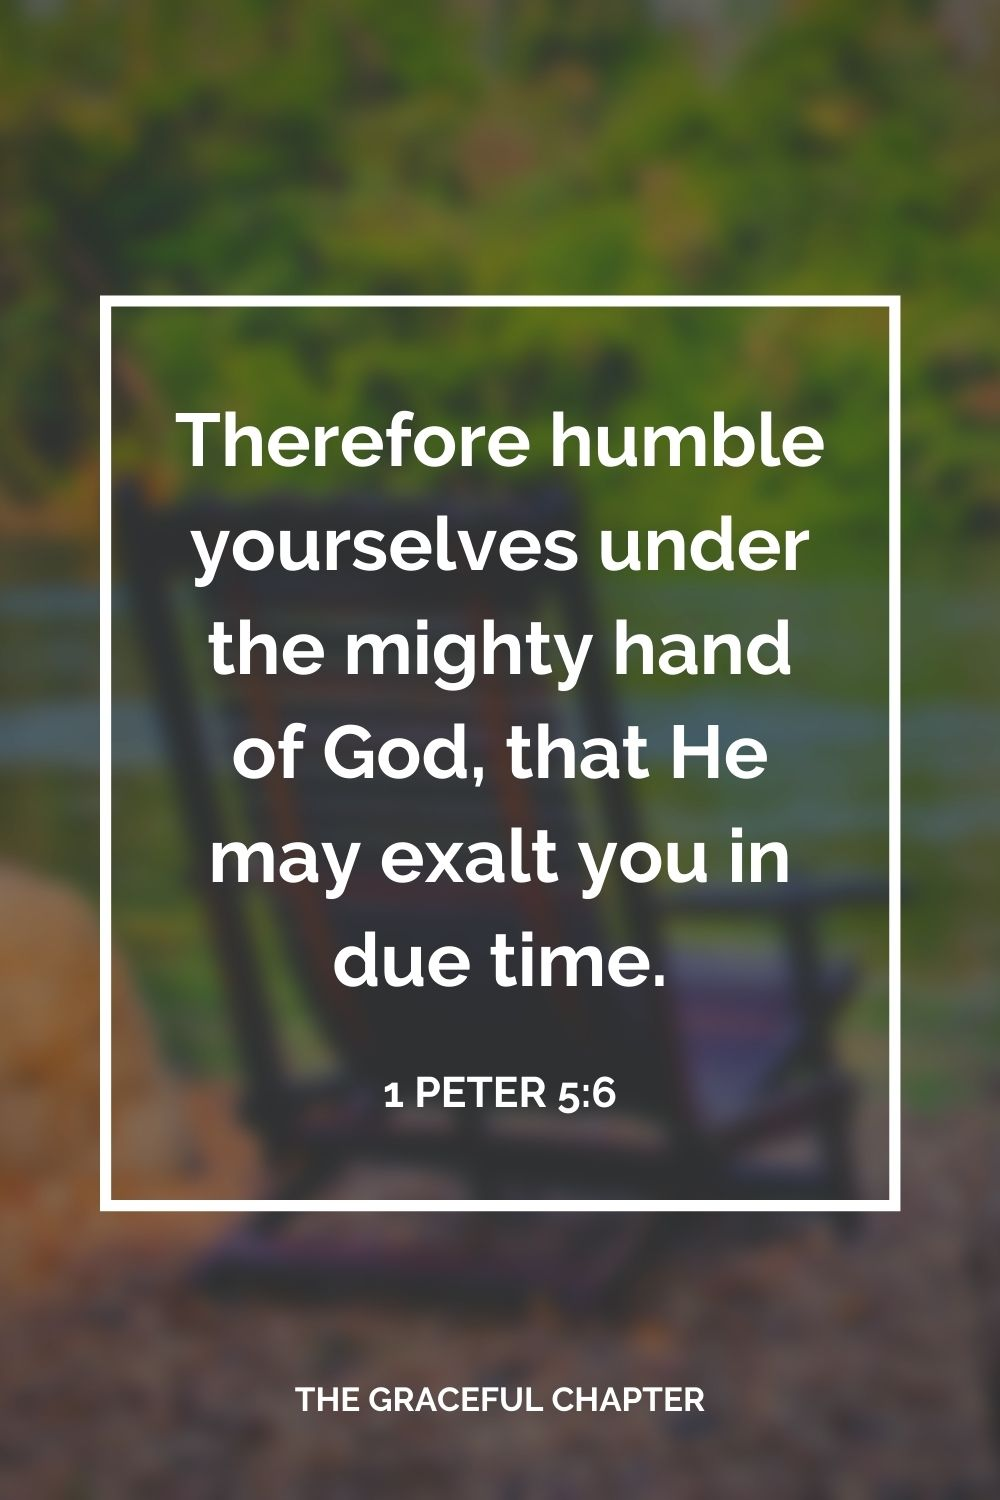 Therefore humble yourselves under the mighty hand of God, that He may exalt you in due time.  1 Peter 5:6